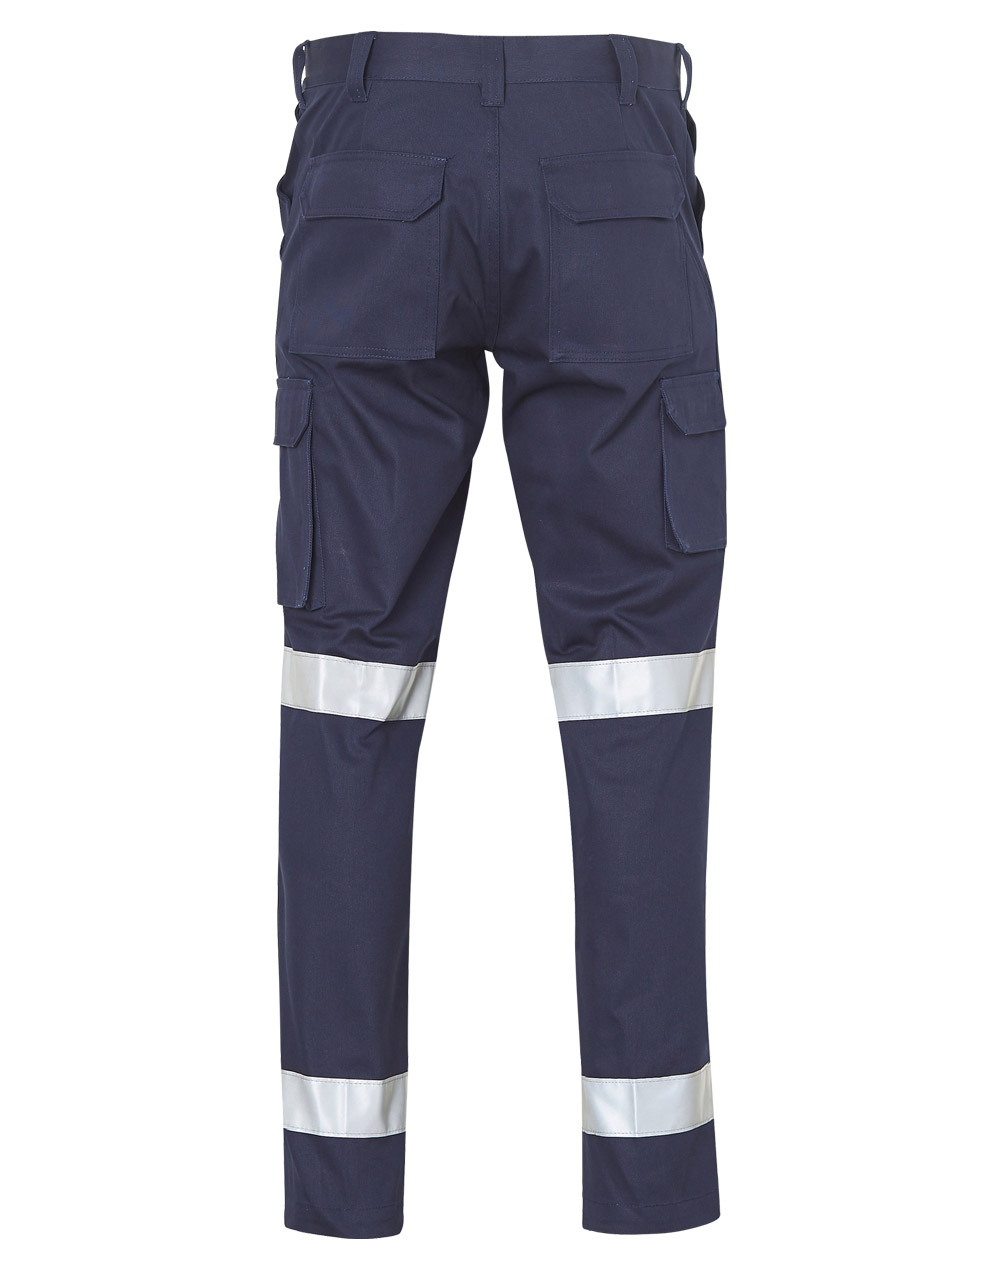 https://s3-ap-southeast-1.amazonaws.com/ws-imgs/WORKWEAR/WP07HV_Navy_Back.jpg